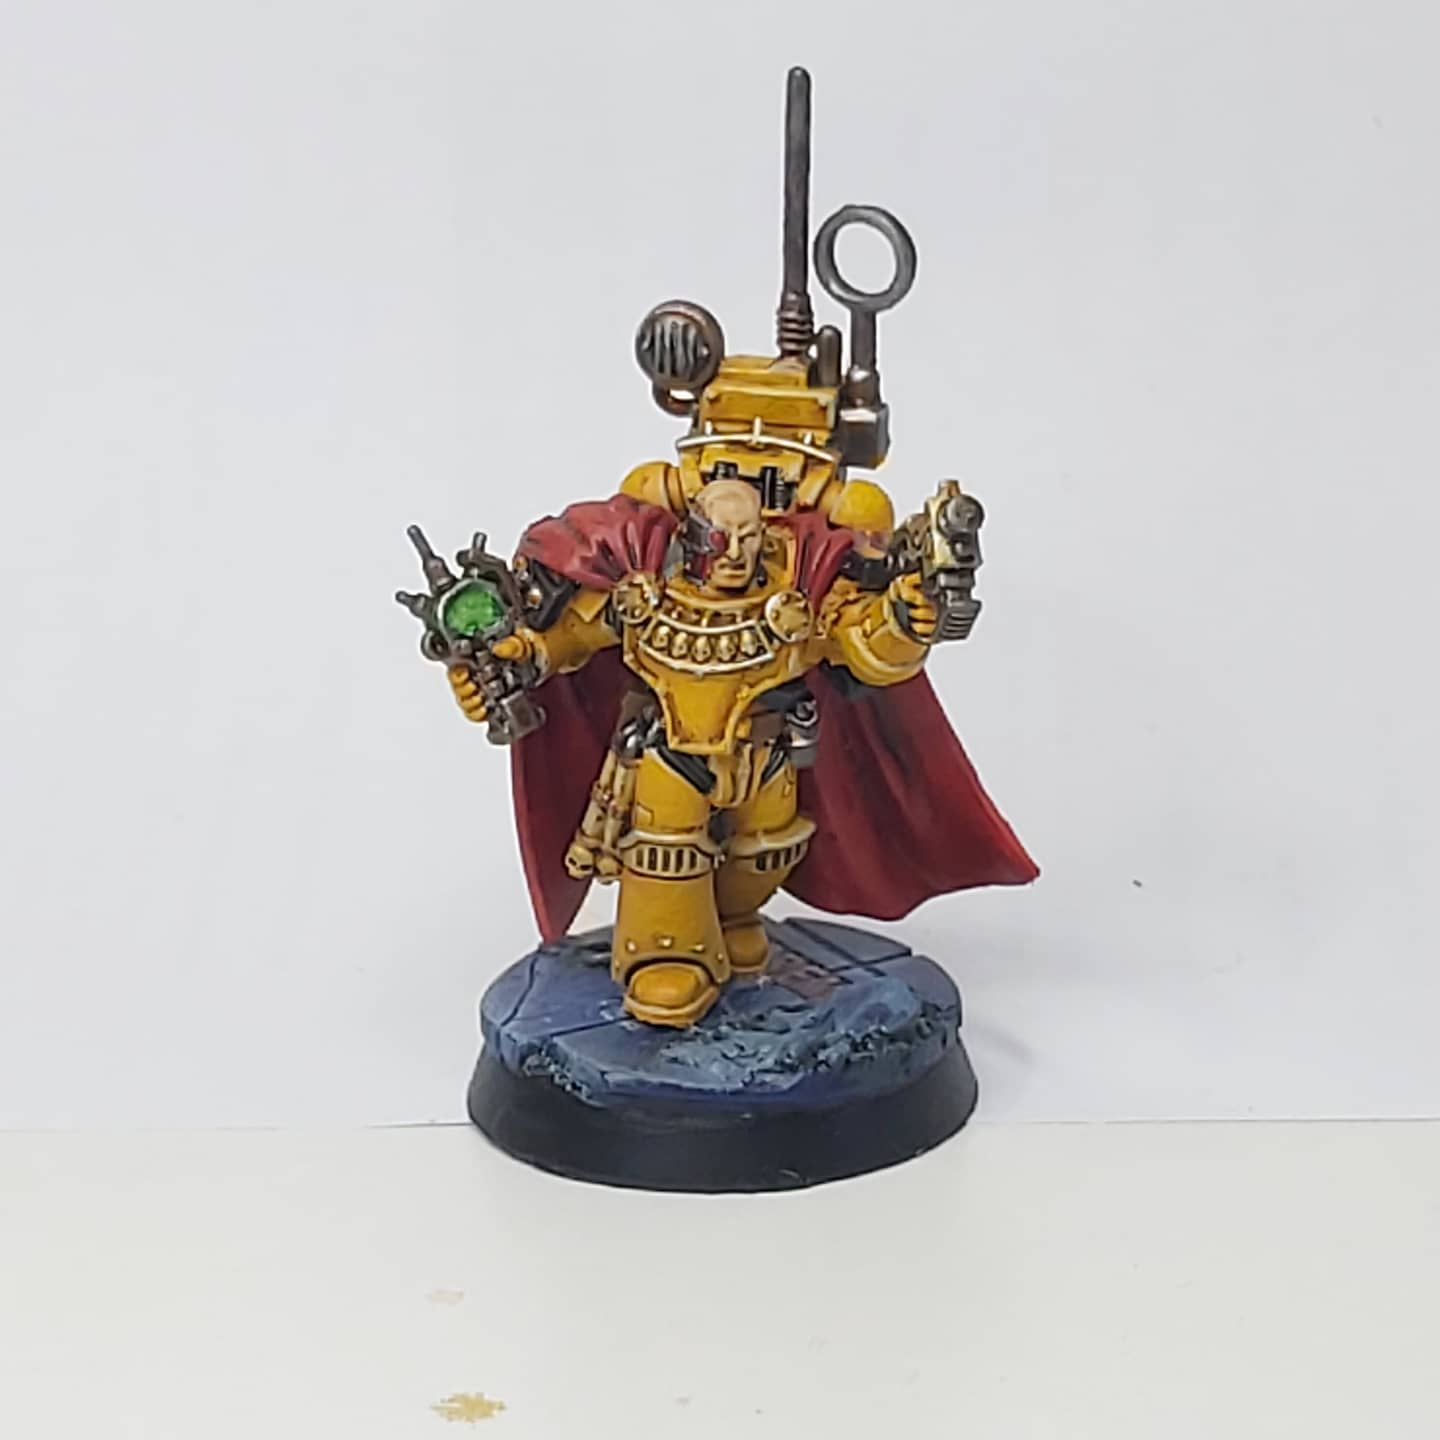 A model Master Of Signal - a space marine in yellow and black armour, carrying various devices and wearing a long red robe.